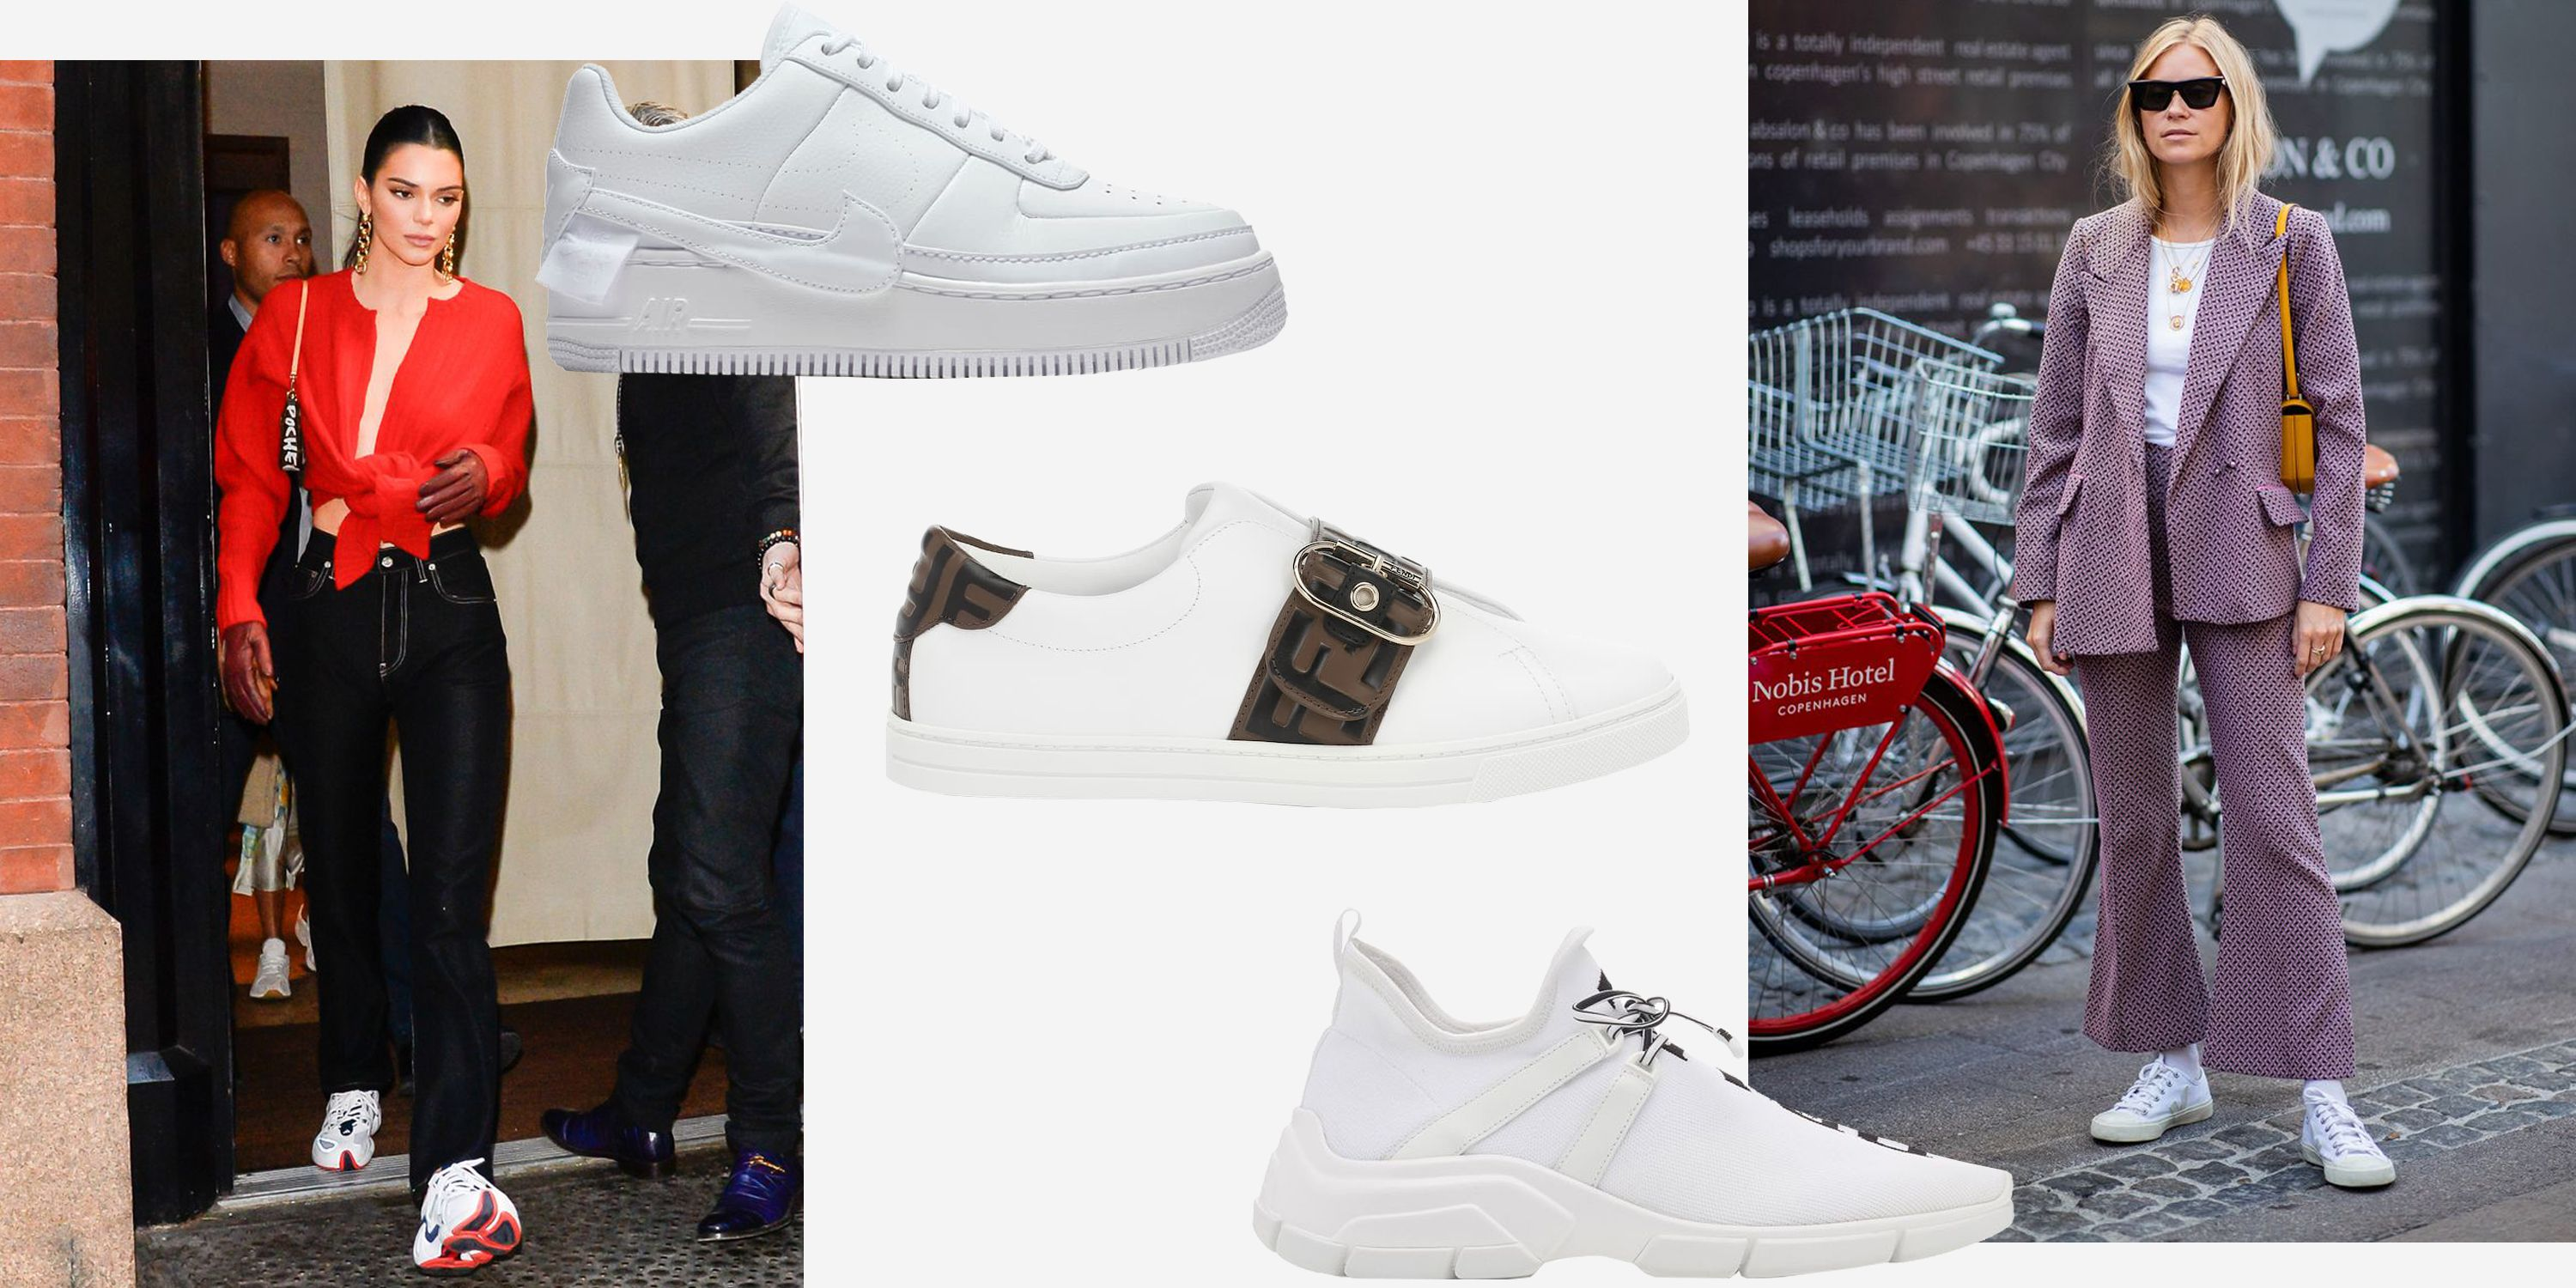 Best White Sneakers For Women Shop the Best White Sneakers